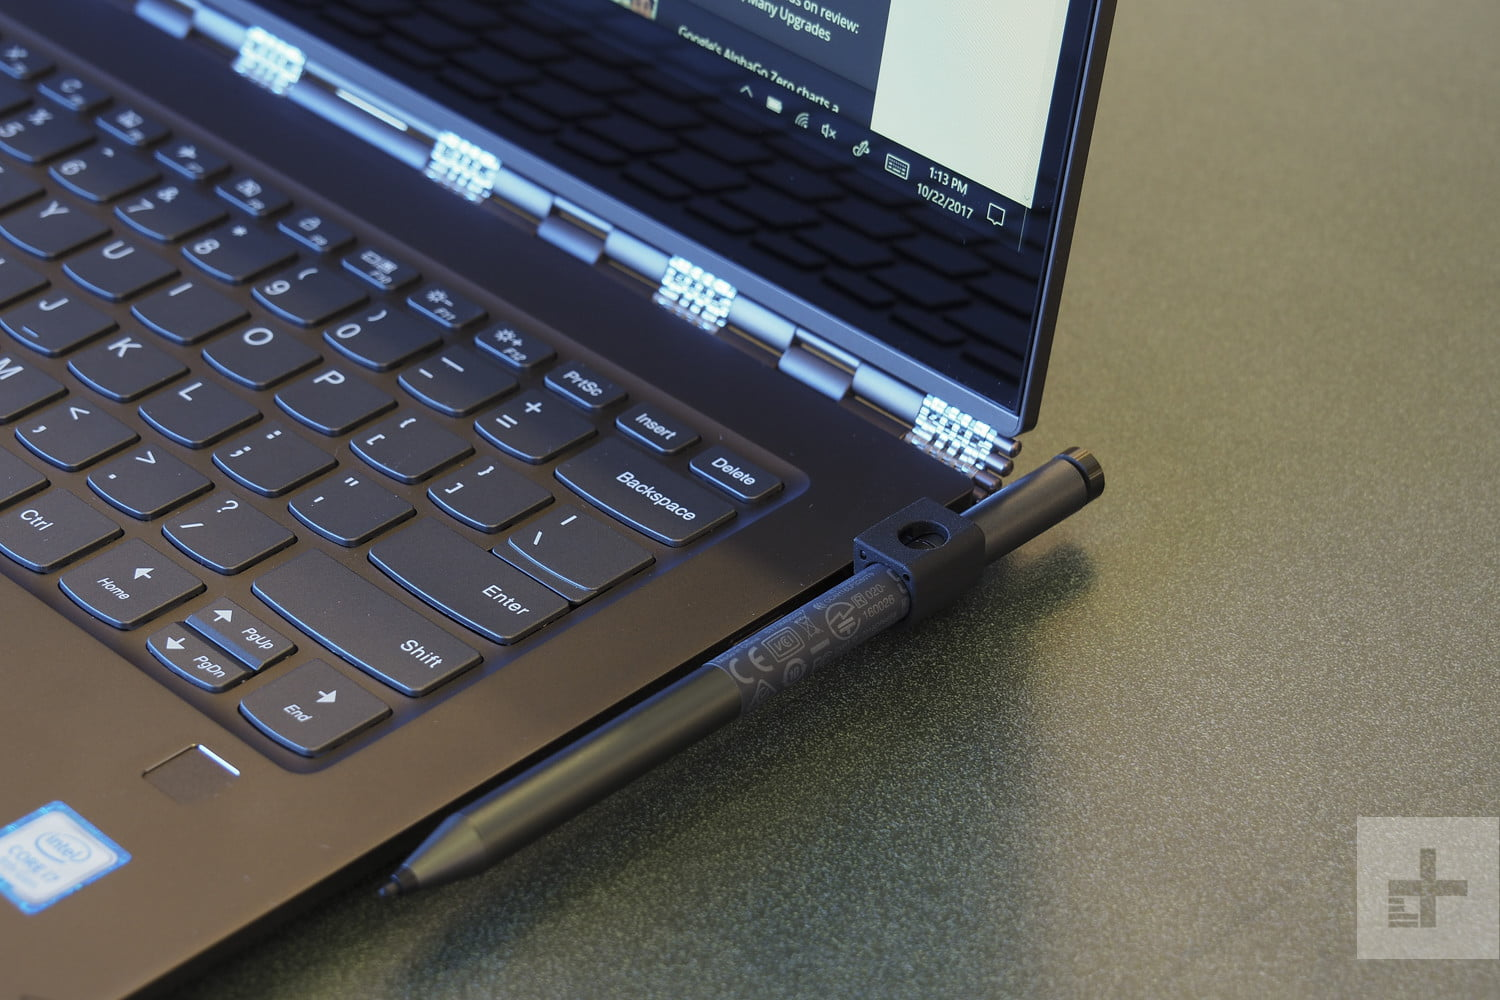 Lenovo Yoga 920 Review | Digital Trends